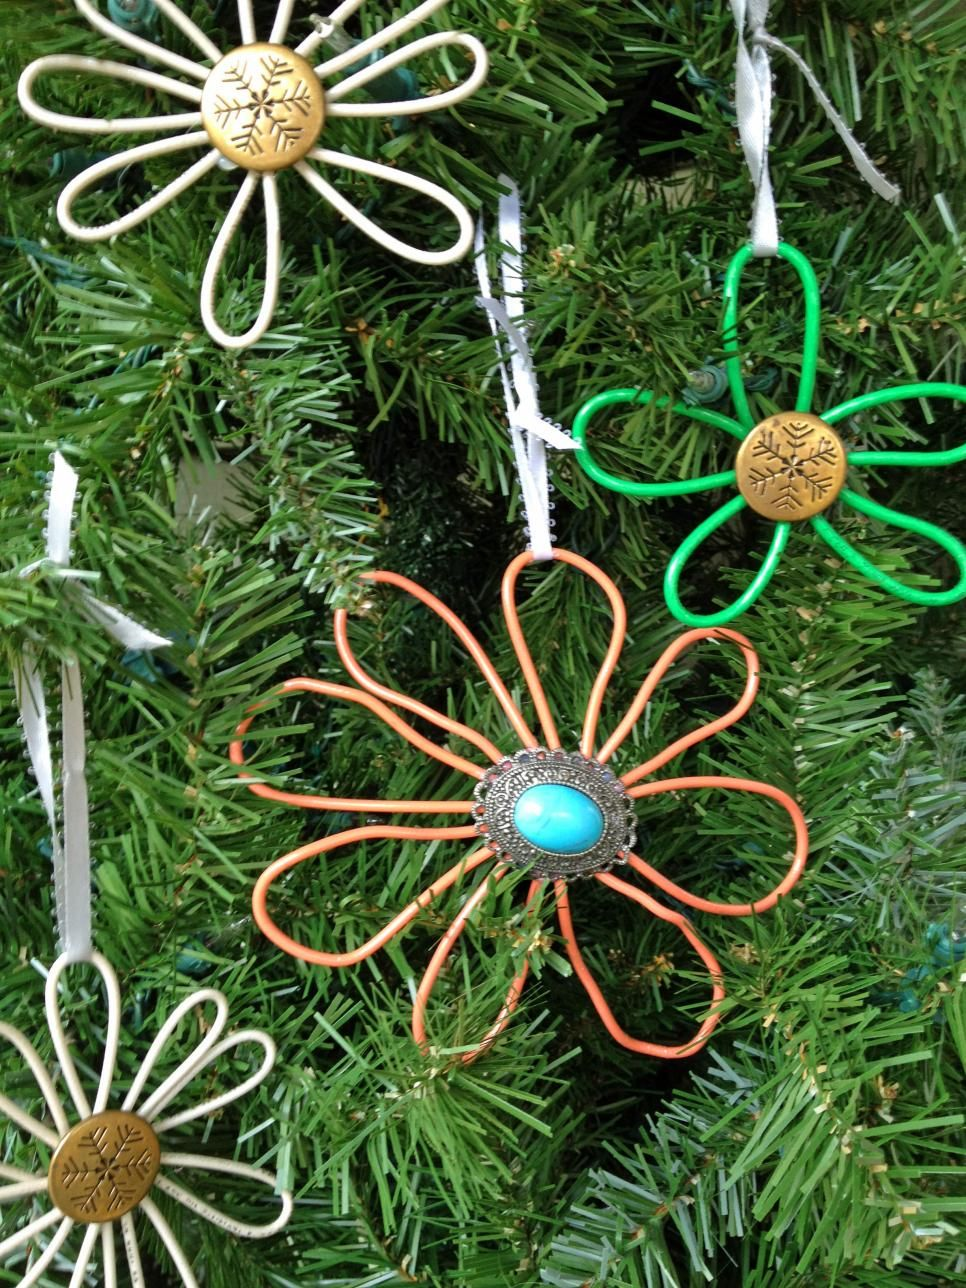 19 Rustic Christmas Decorations Made Inexpensively From Upcycled Items Easy Christmas Ornaments Christmas Ornaments To Make Christmas Decorations Rustic